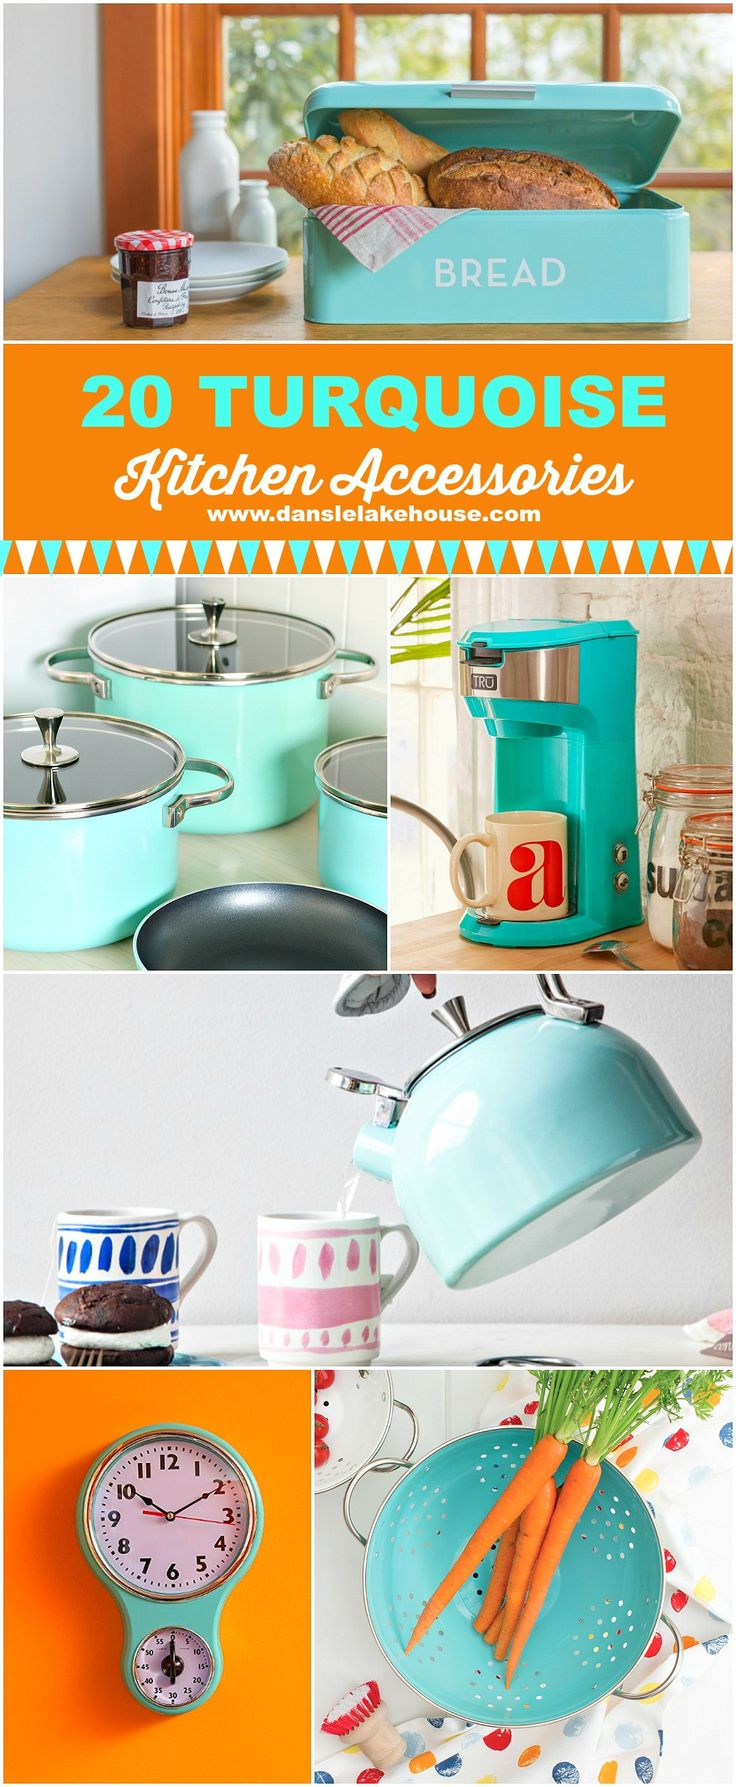 A great round up of 20 turquoise kitchen gadgets and accessories with a retro flare - great gift guide for vintage loving cooks.